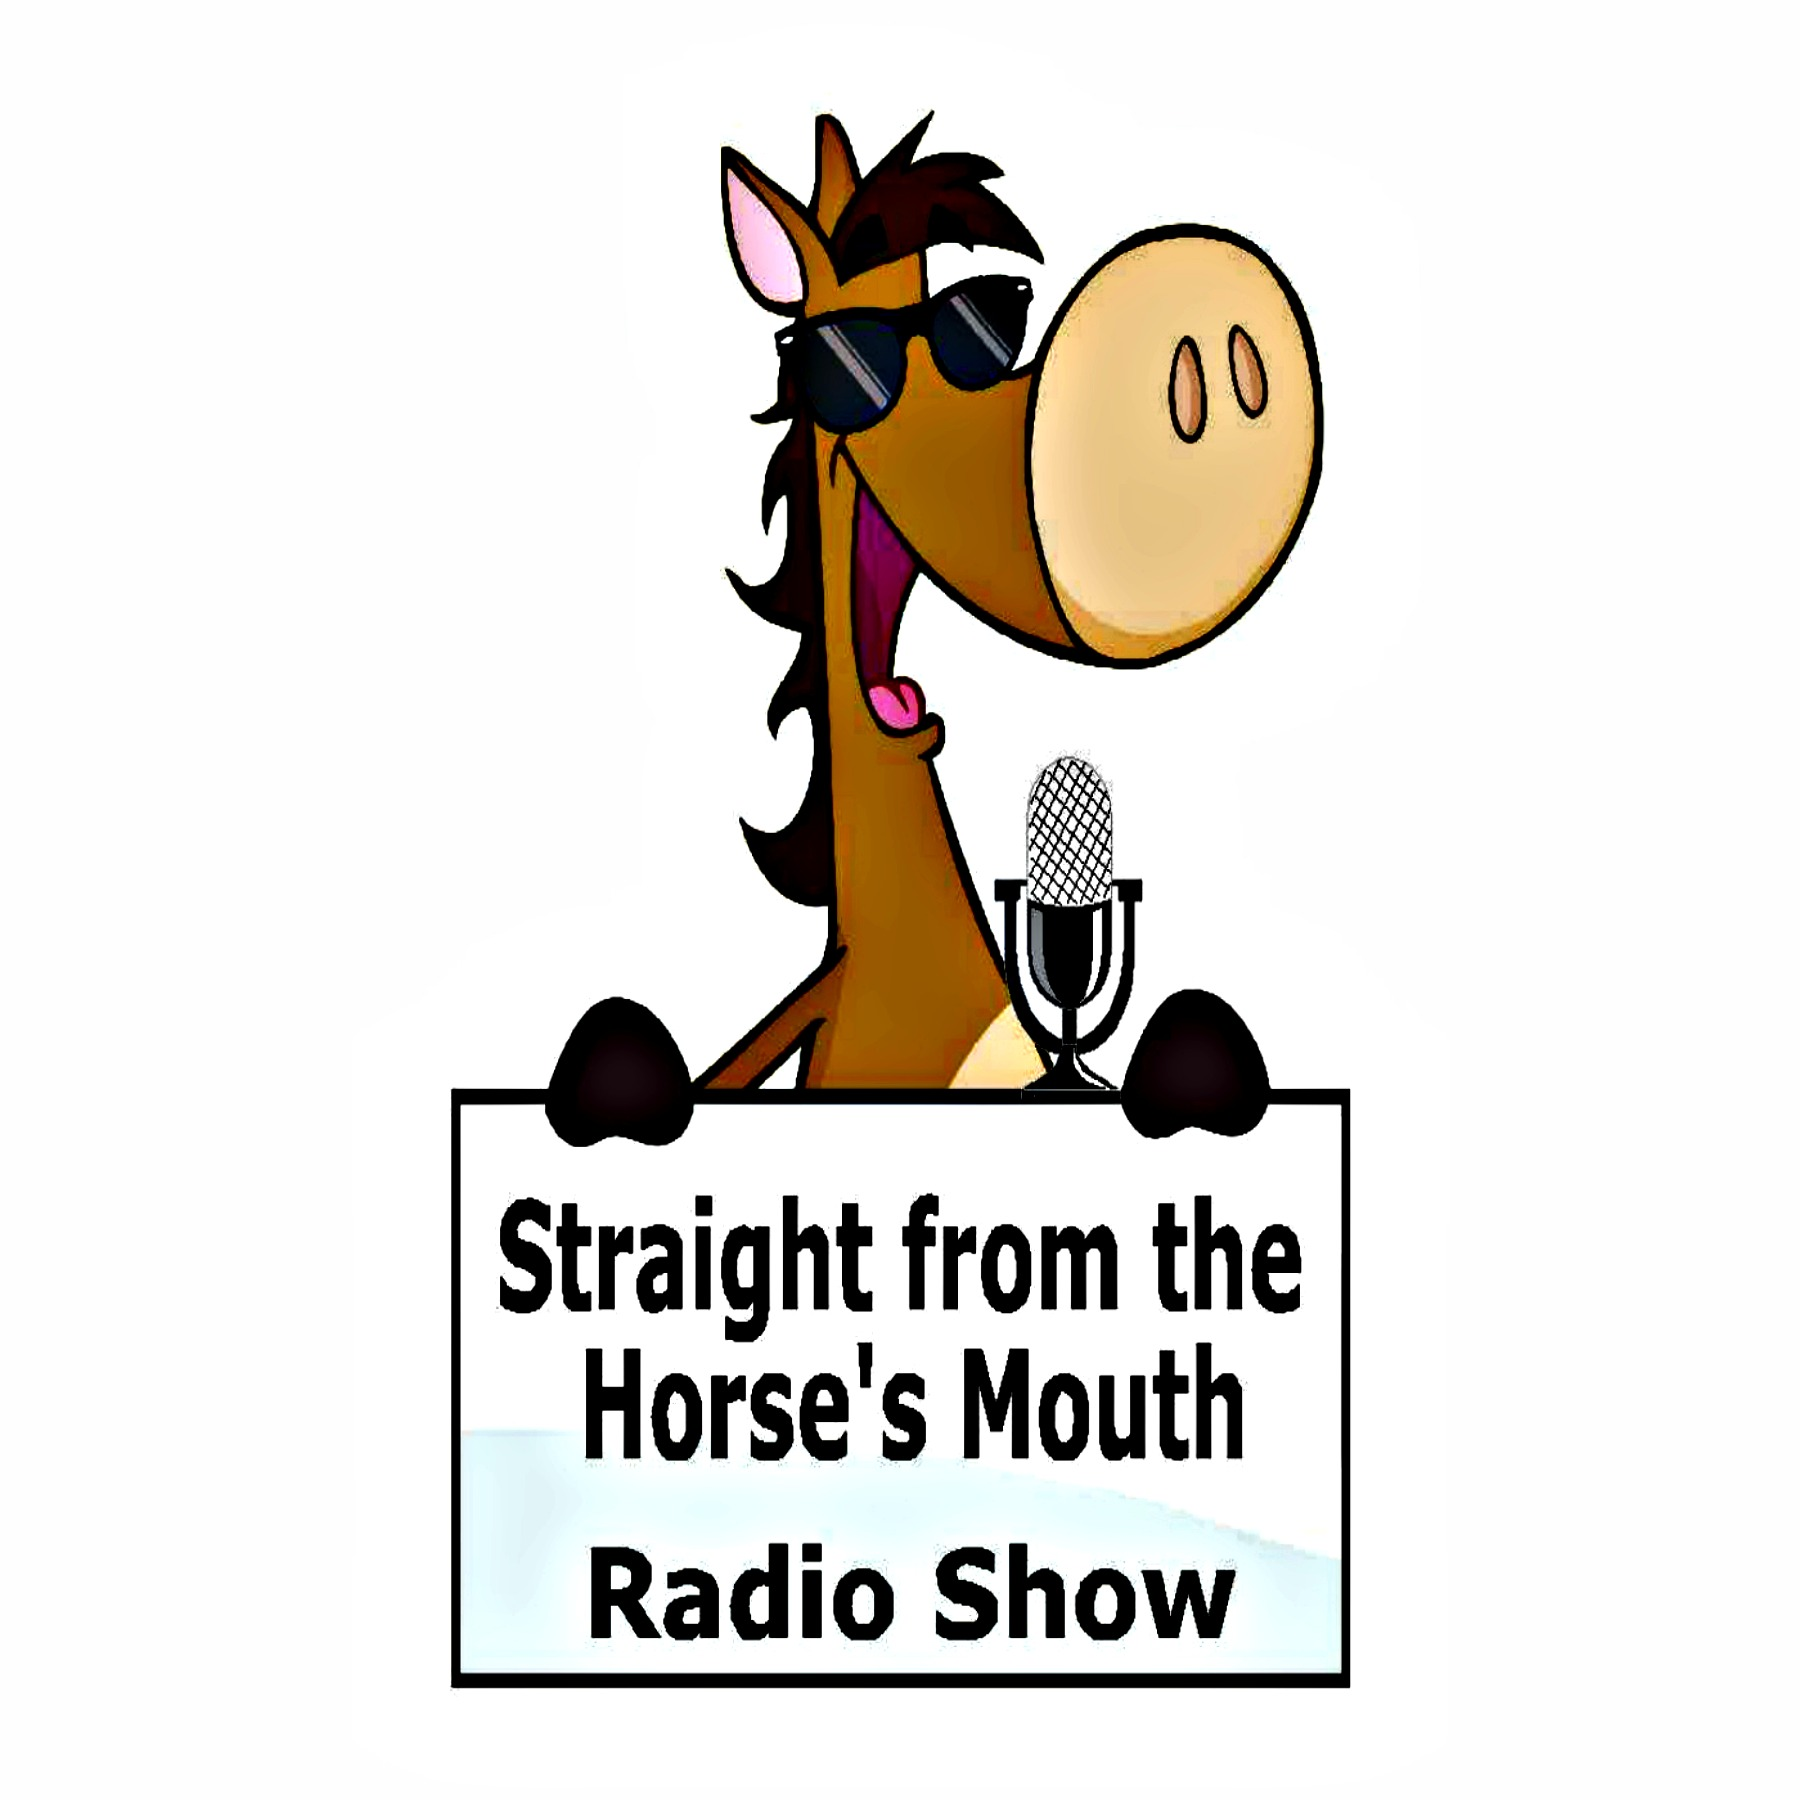 STRAIGHT FROM THE HORSE'S MOUTH RADIO SHOW LOGO